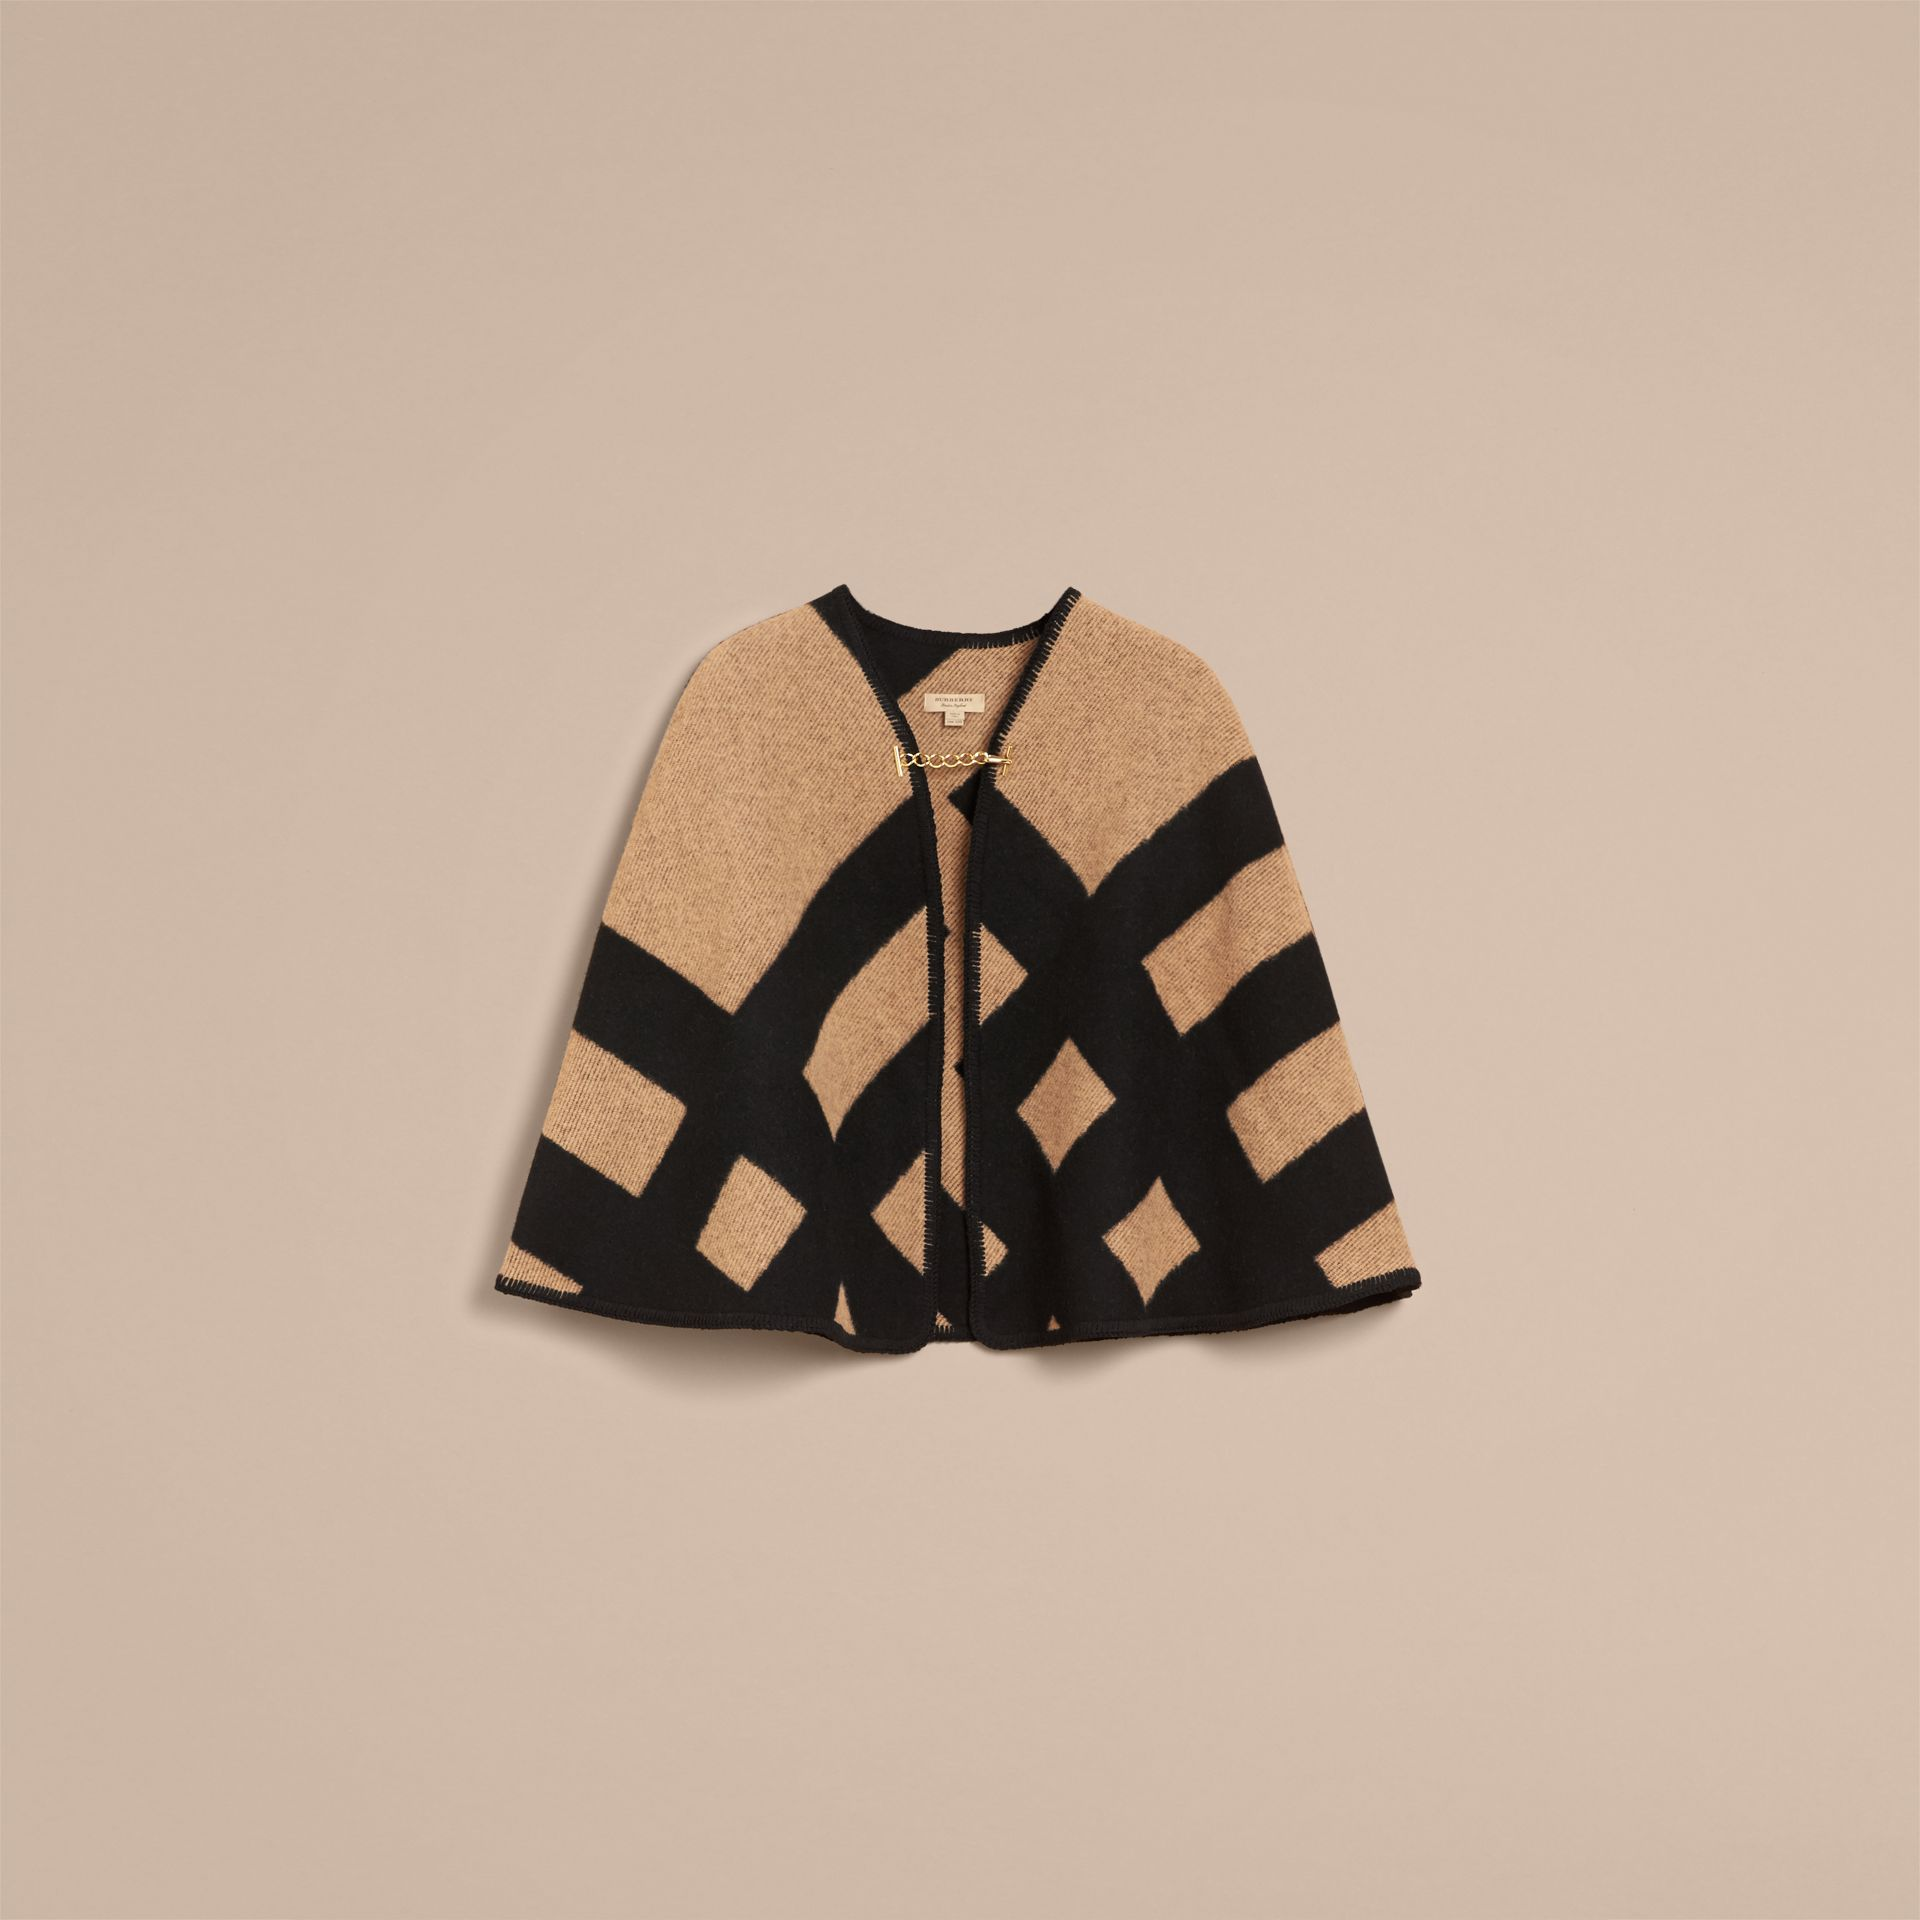 Check Wool Cashmere Blanket Cape in Camel/black - Women | Burberry - gallery image 4